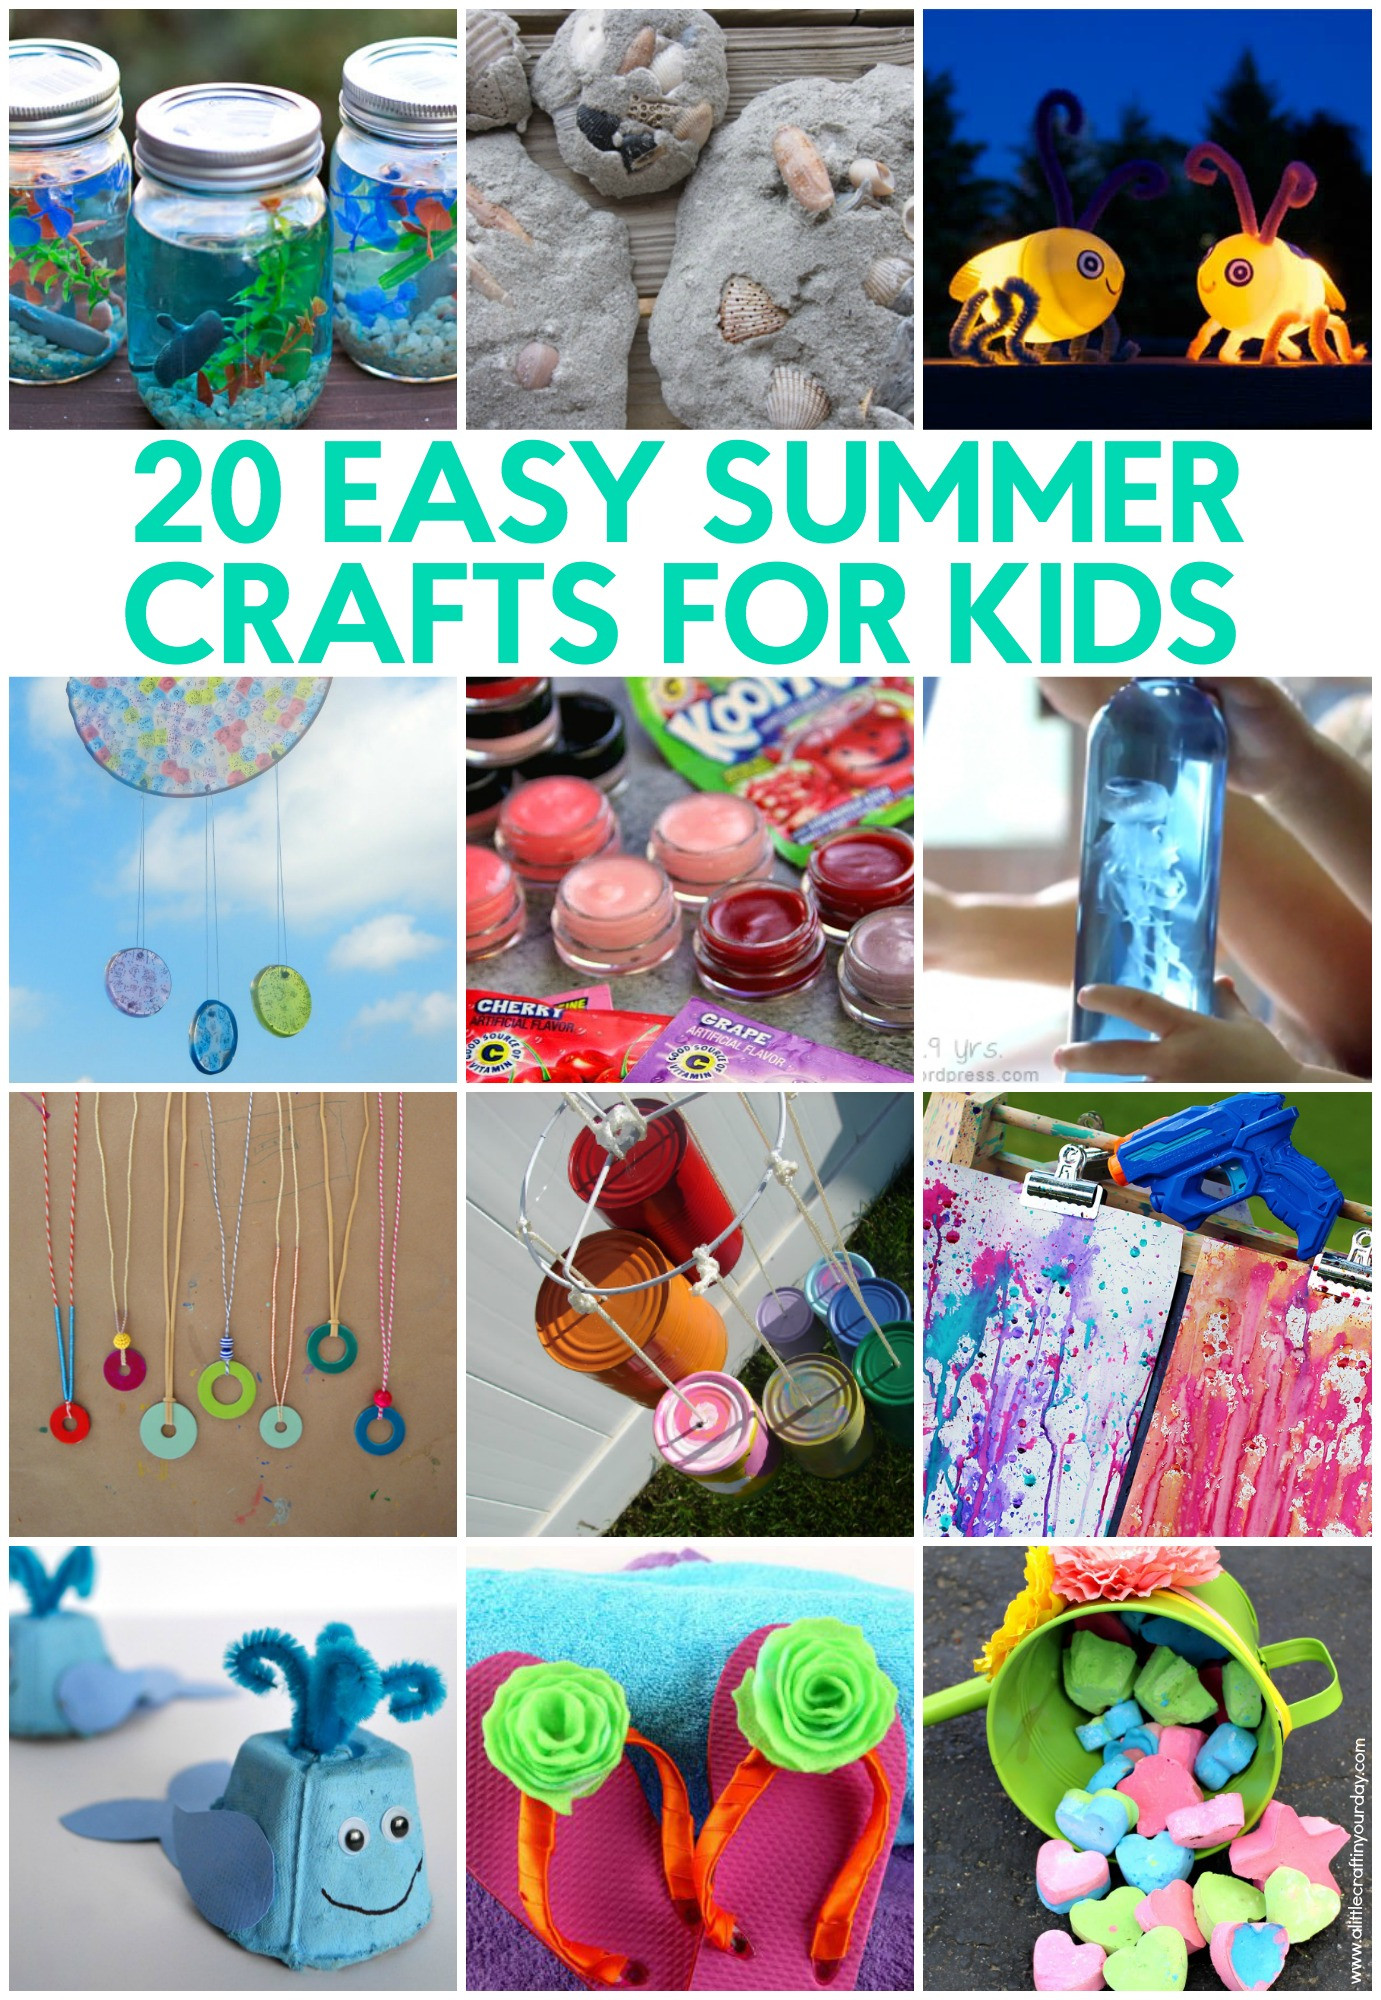 Homemade Crafts For Toddlers  20 Easy Summer Crafts for Kids A Little Craft In Your Day